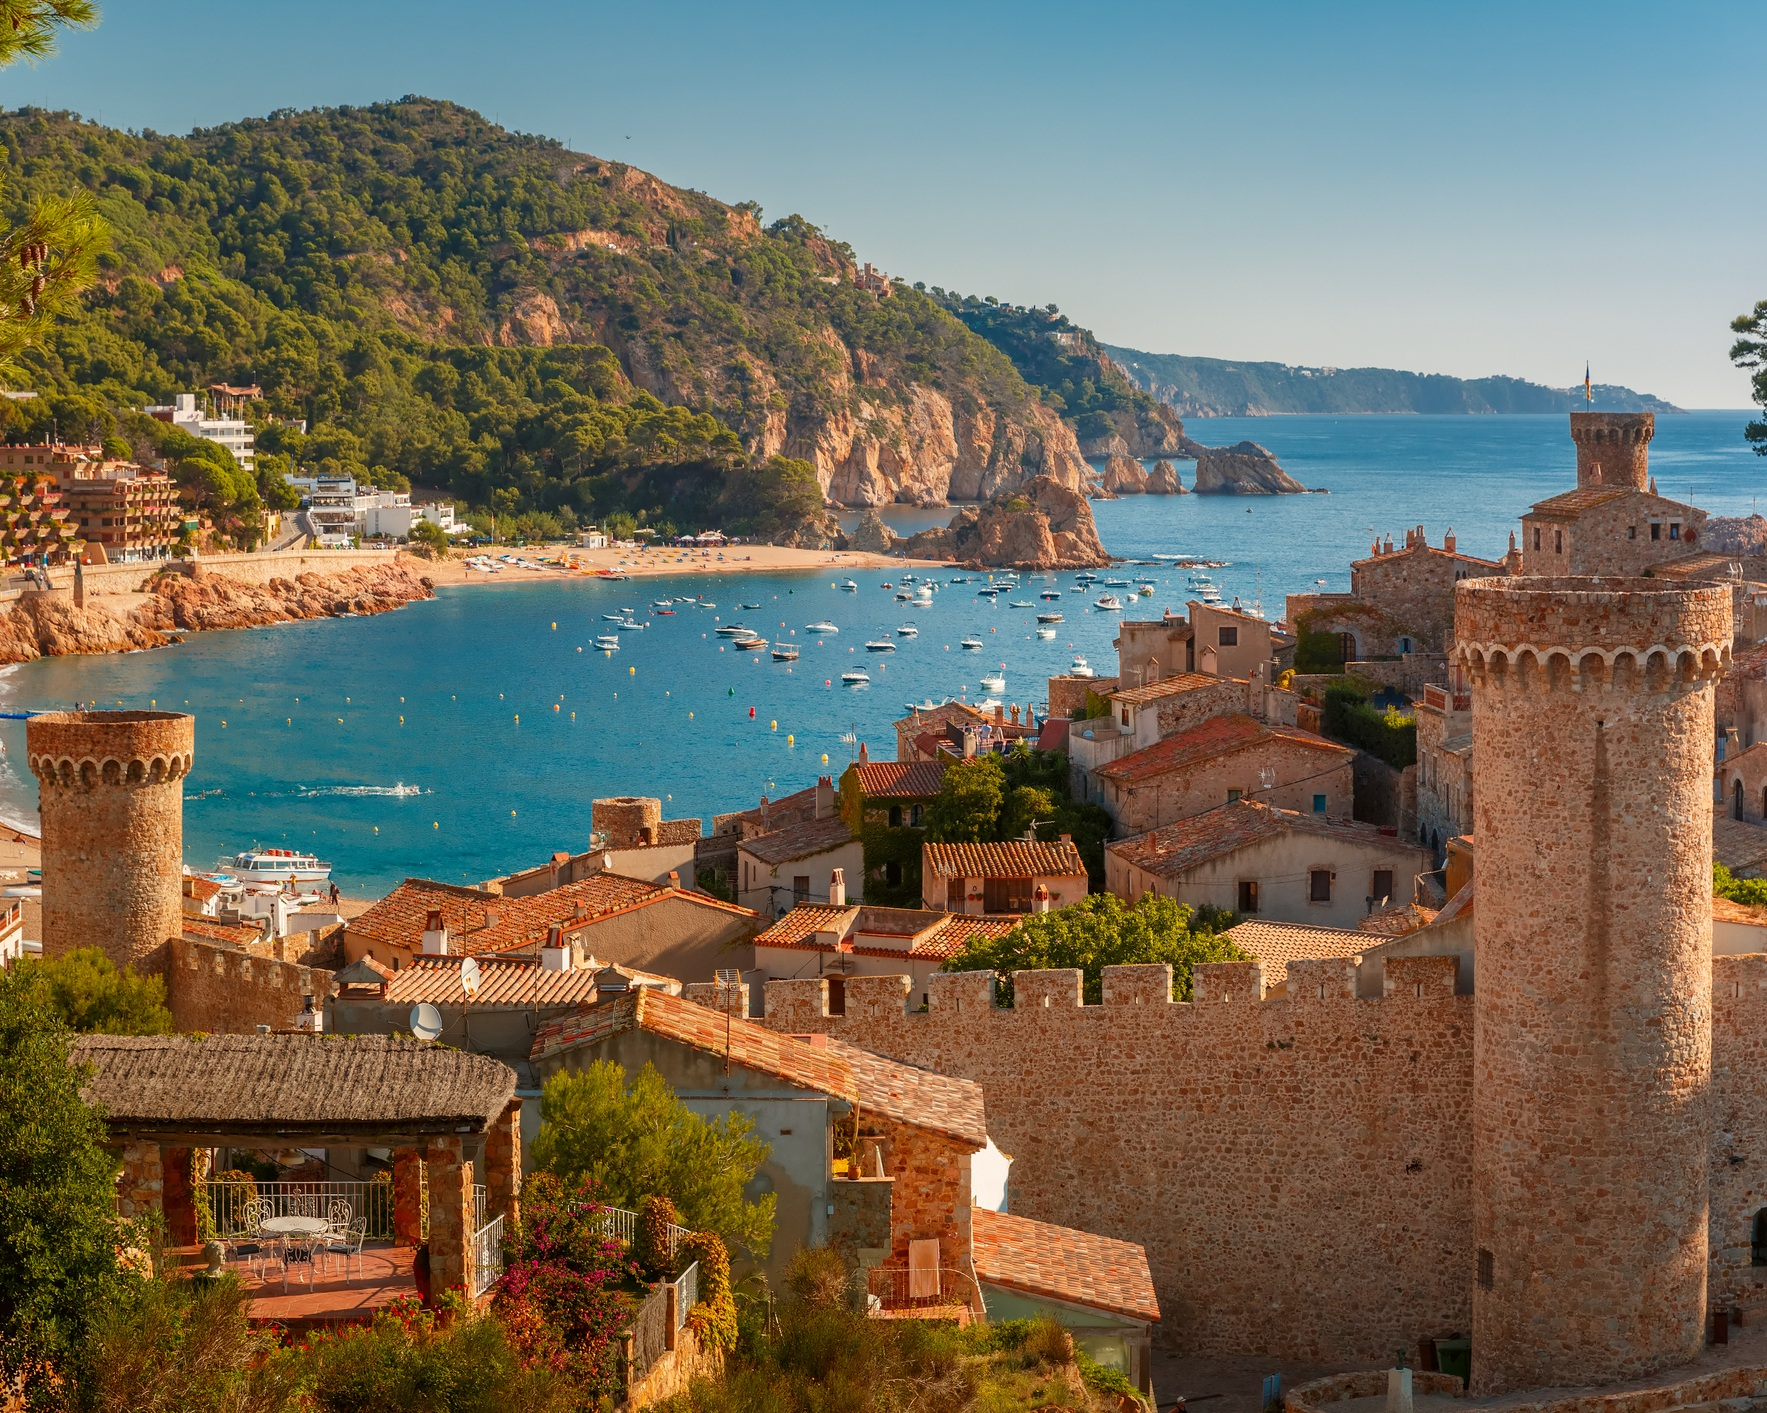 DESTINATION SPAIN - The Spanish Mediterranean coast stretches over 800 km and offers everything the yachting heart desires from cultural treasures to diverse landscapes. Vibrant cities such as Barcelona, miles of sandy beaches and sometimes up to the sea mountain ranges offer an impressive scenario. Don't miss these yachting hotspots along the coastline: The Costa Brava, the